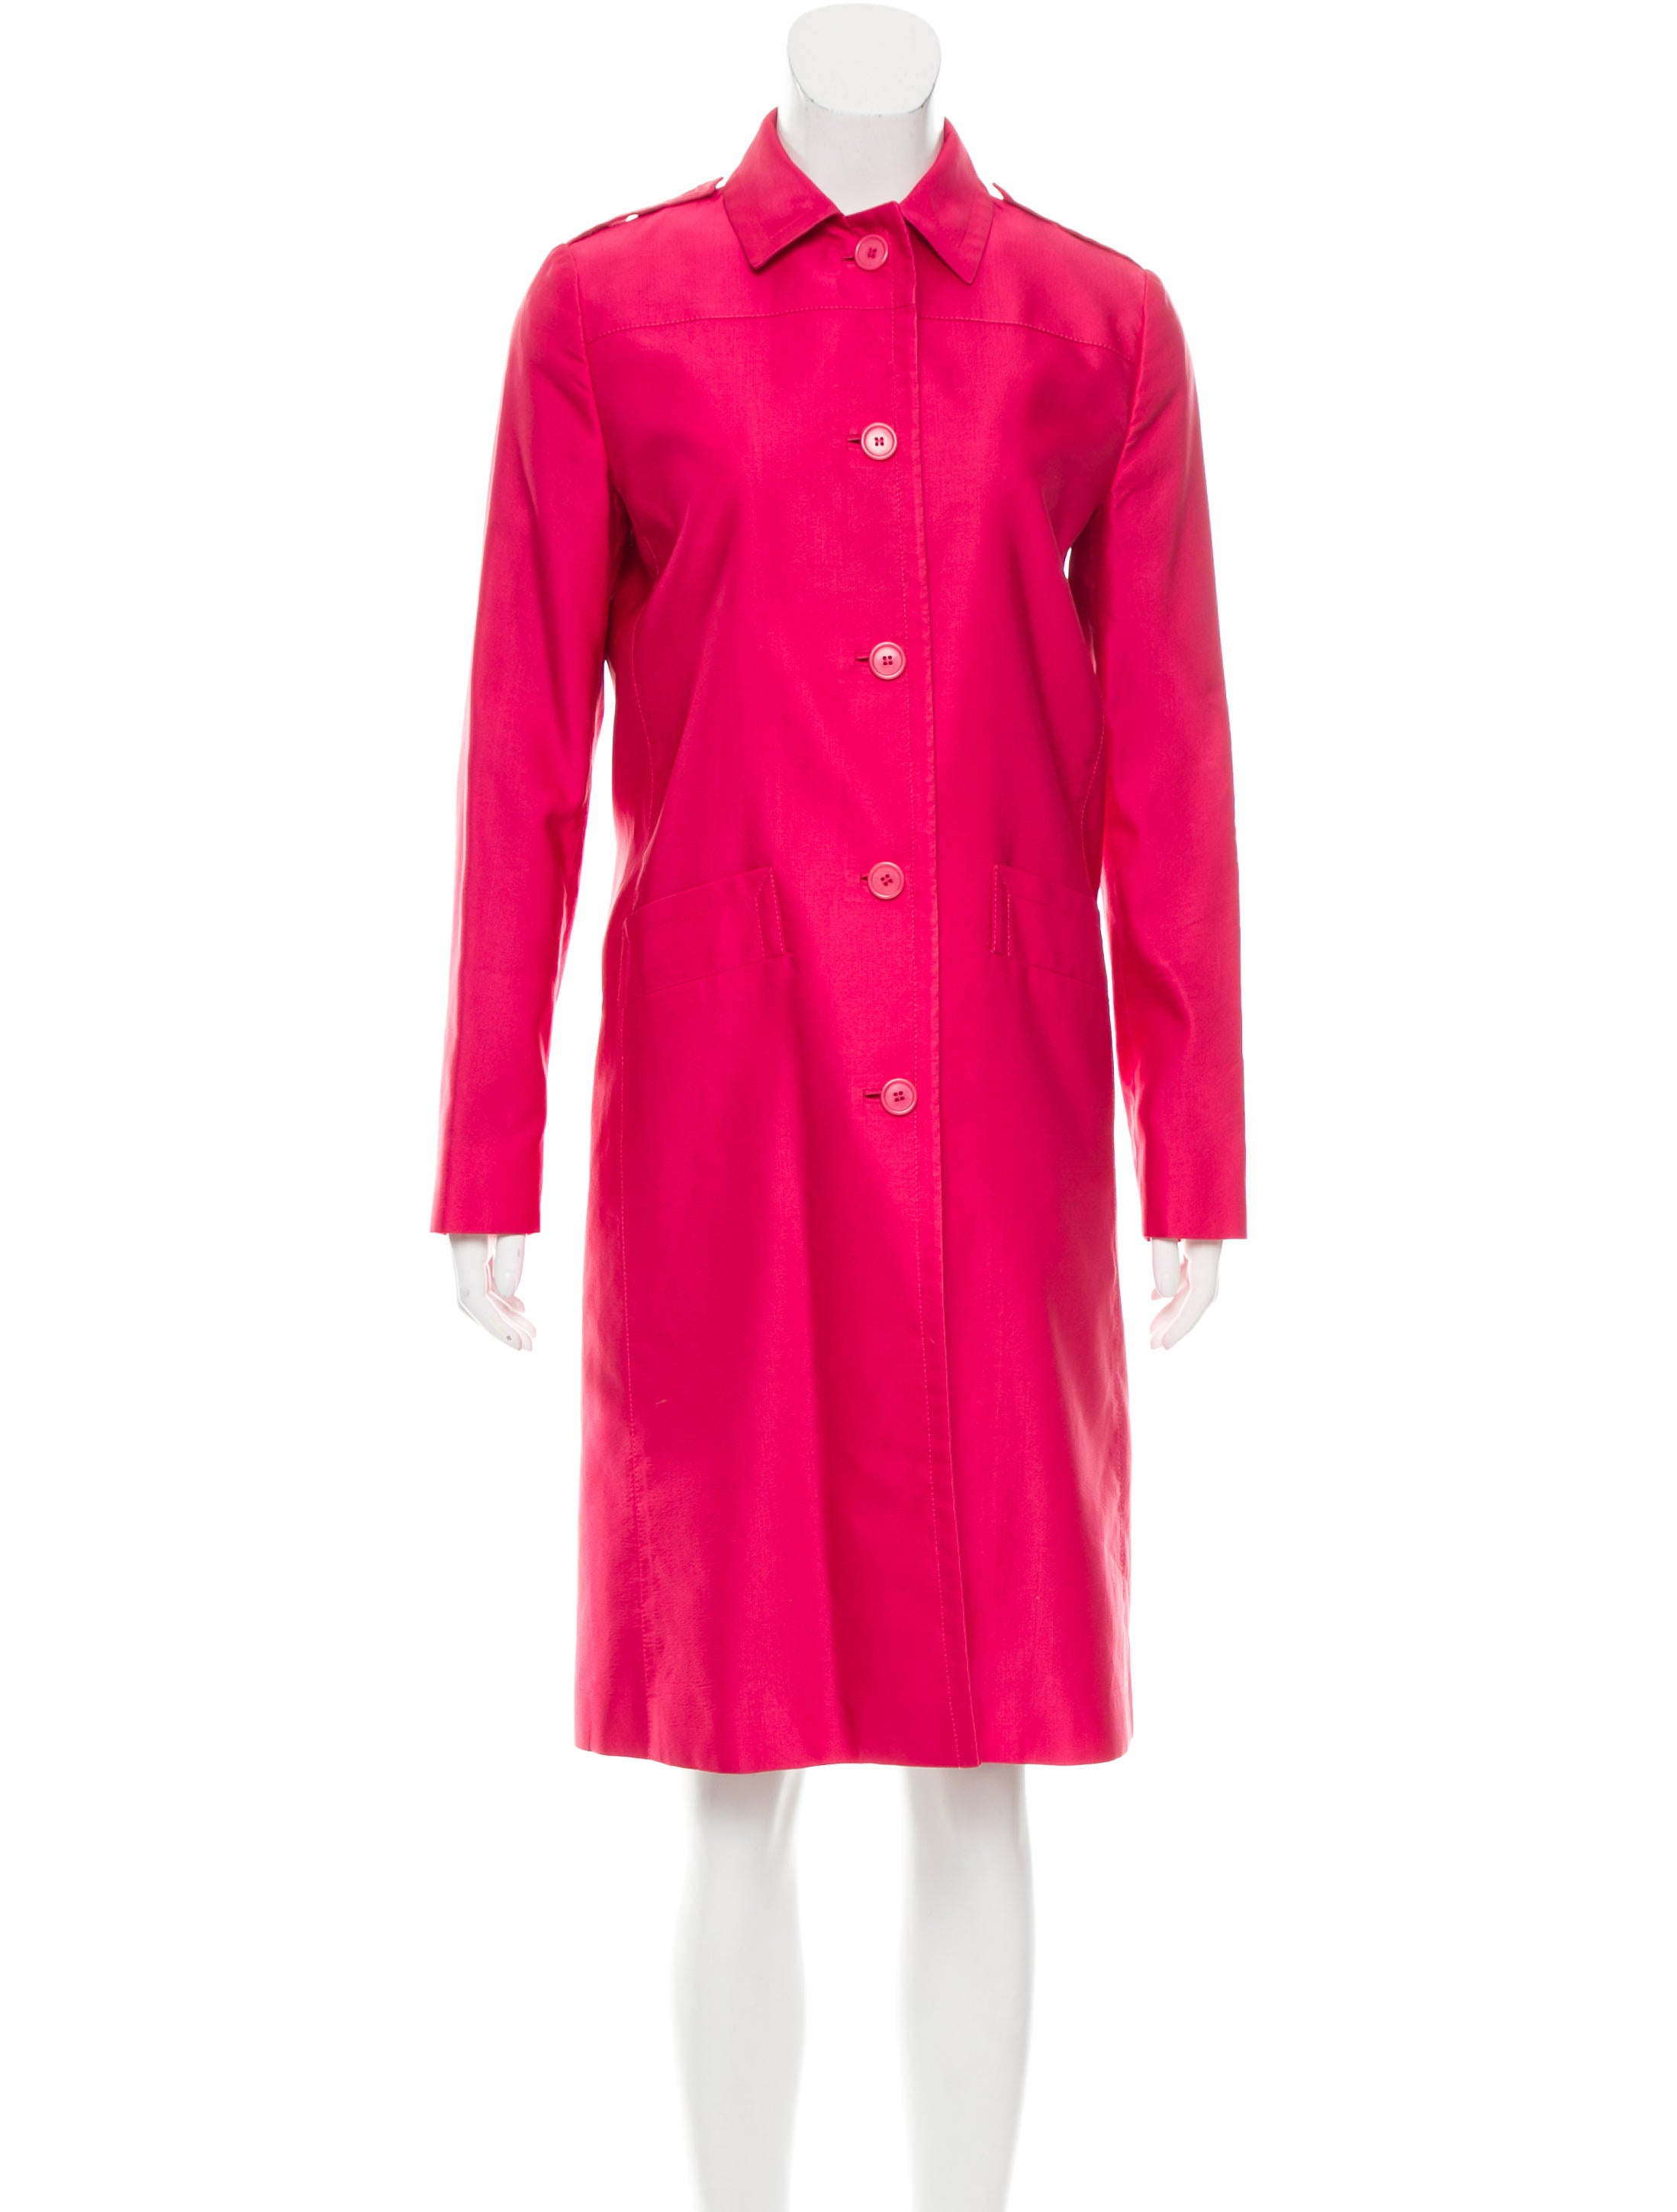 Prada collared button up jacket clothing pra132932 for Women s collared button up shirts